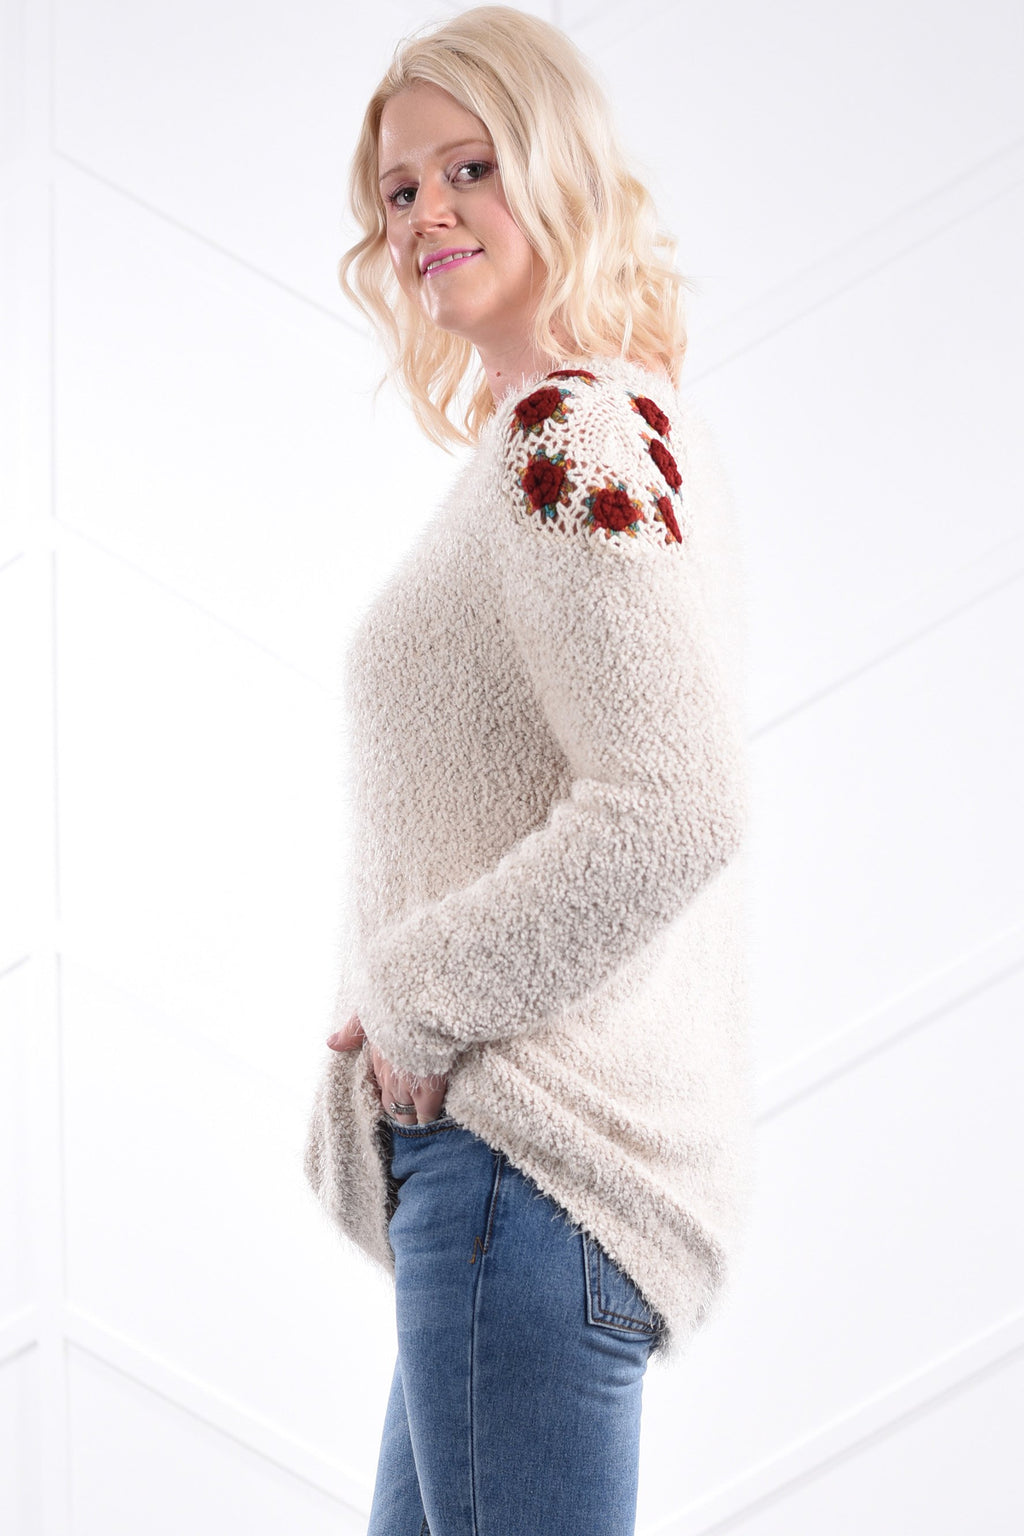 Mara Crochet Sweater - Cream - women's boutique clothing Strong Confident You